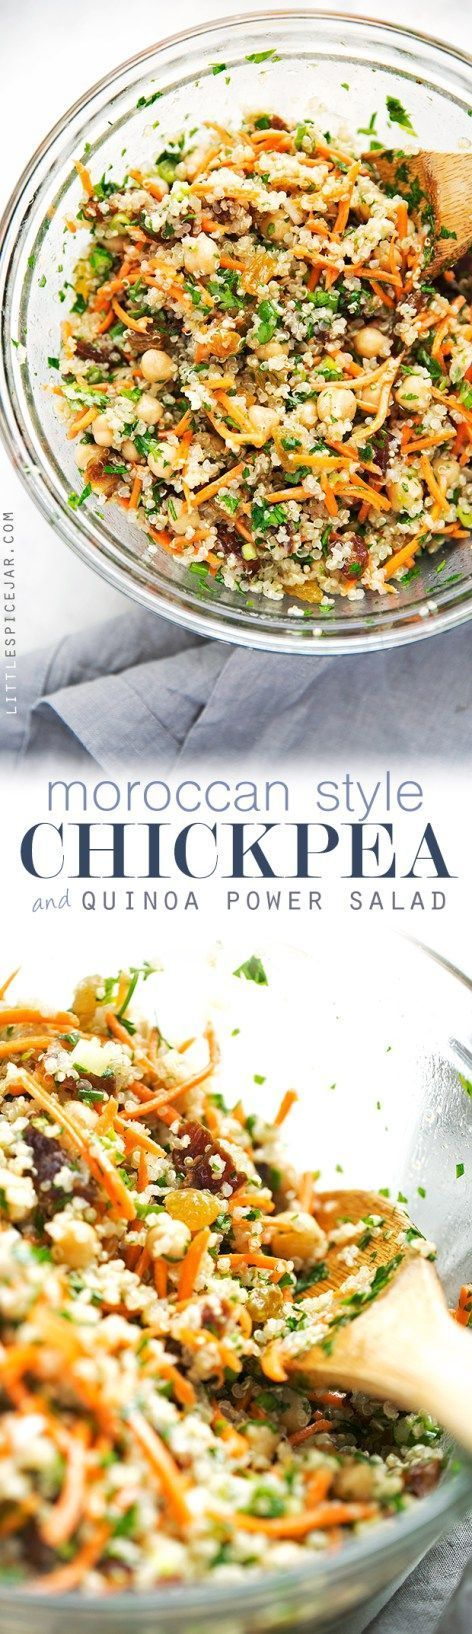 Moroccan Chickpea Quinoa Power Salad - A quick salad loaded with so much flavor and it's perfect as a side or a main meal!